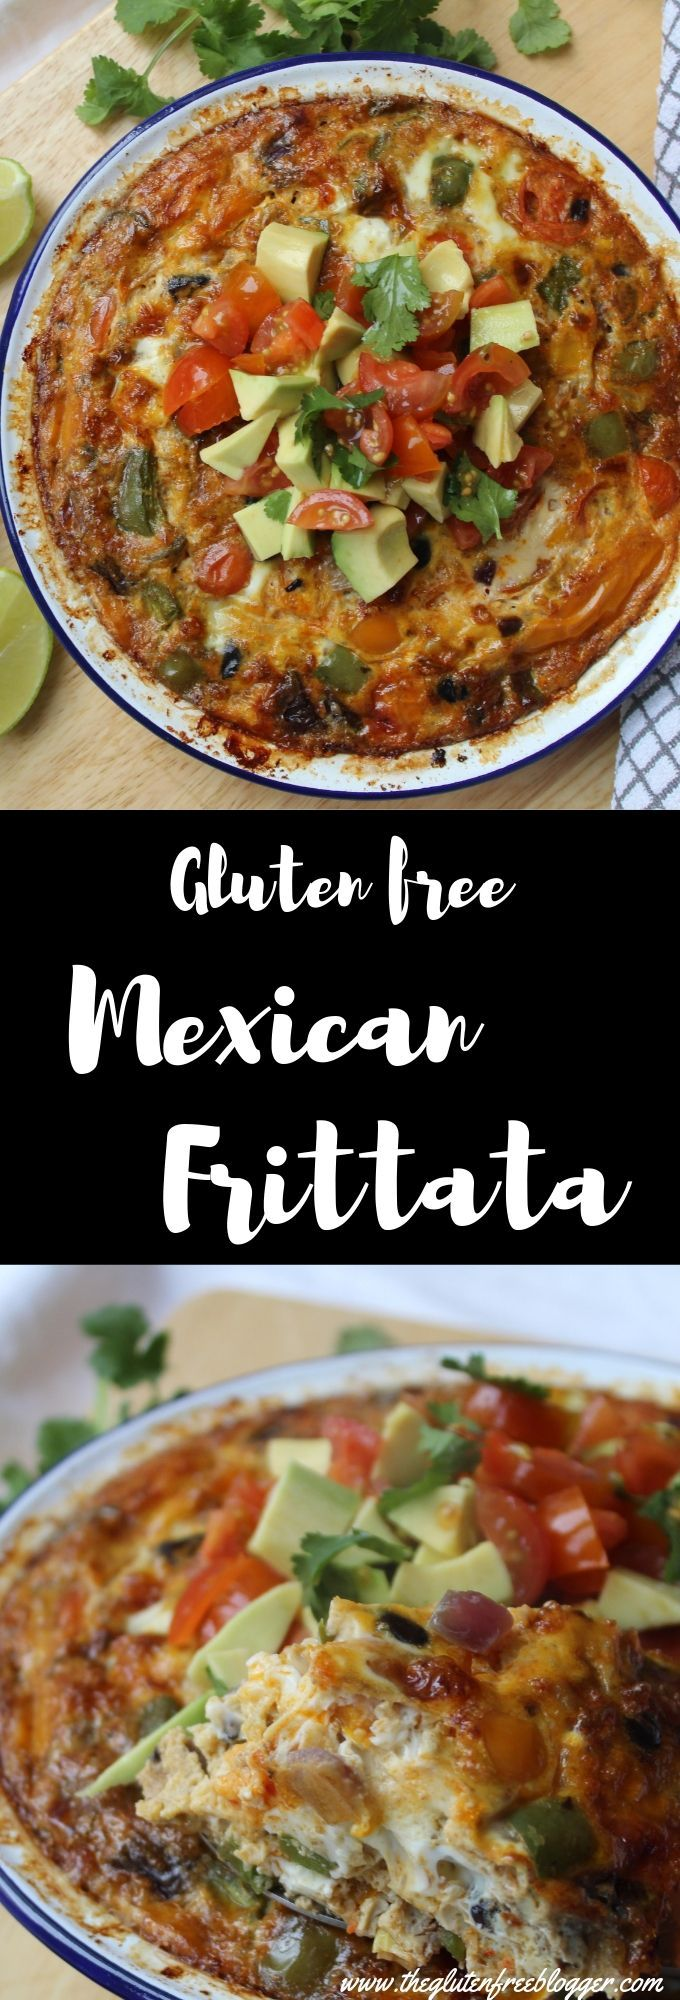 Gluten free Mexican frittata images